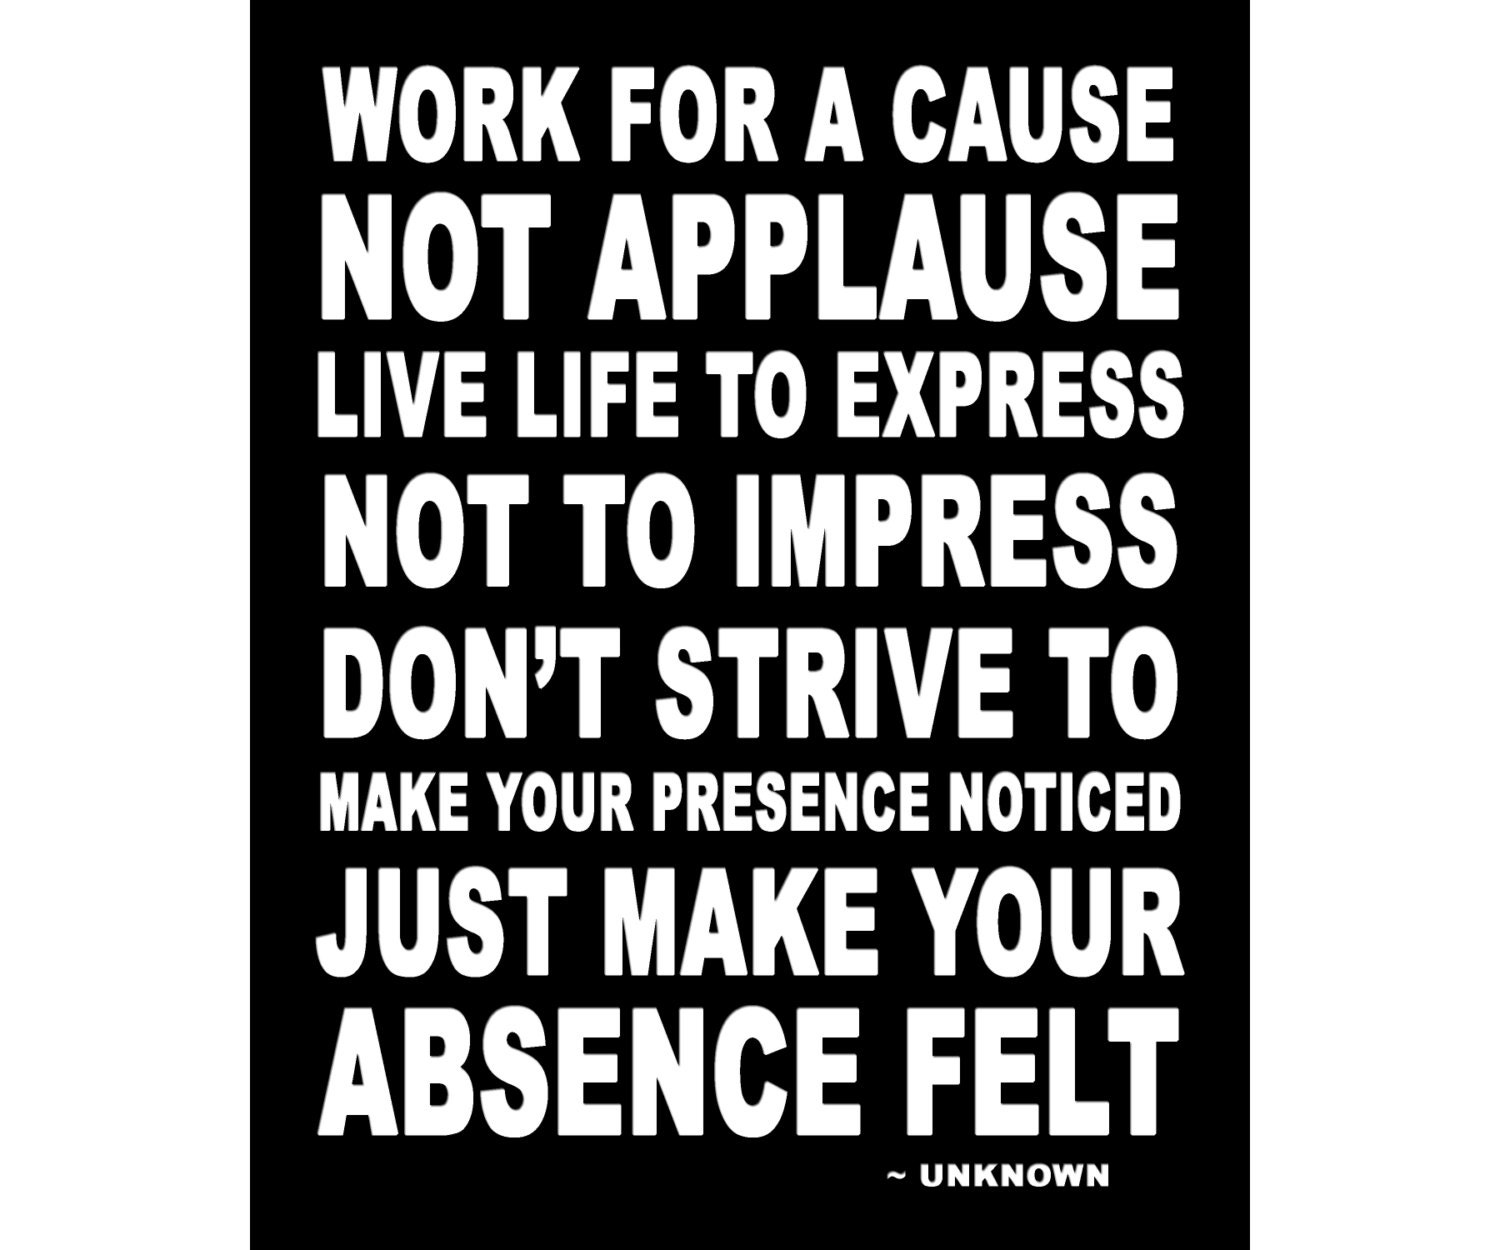 Motivational Quote For Work Work For A Cause Not Applause Available Sizes 8X10 11X14